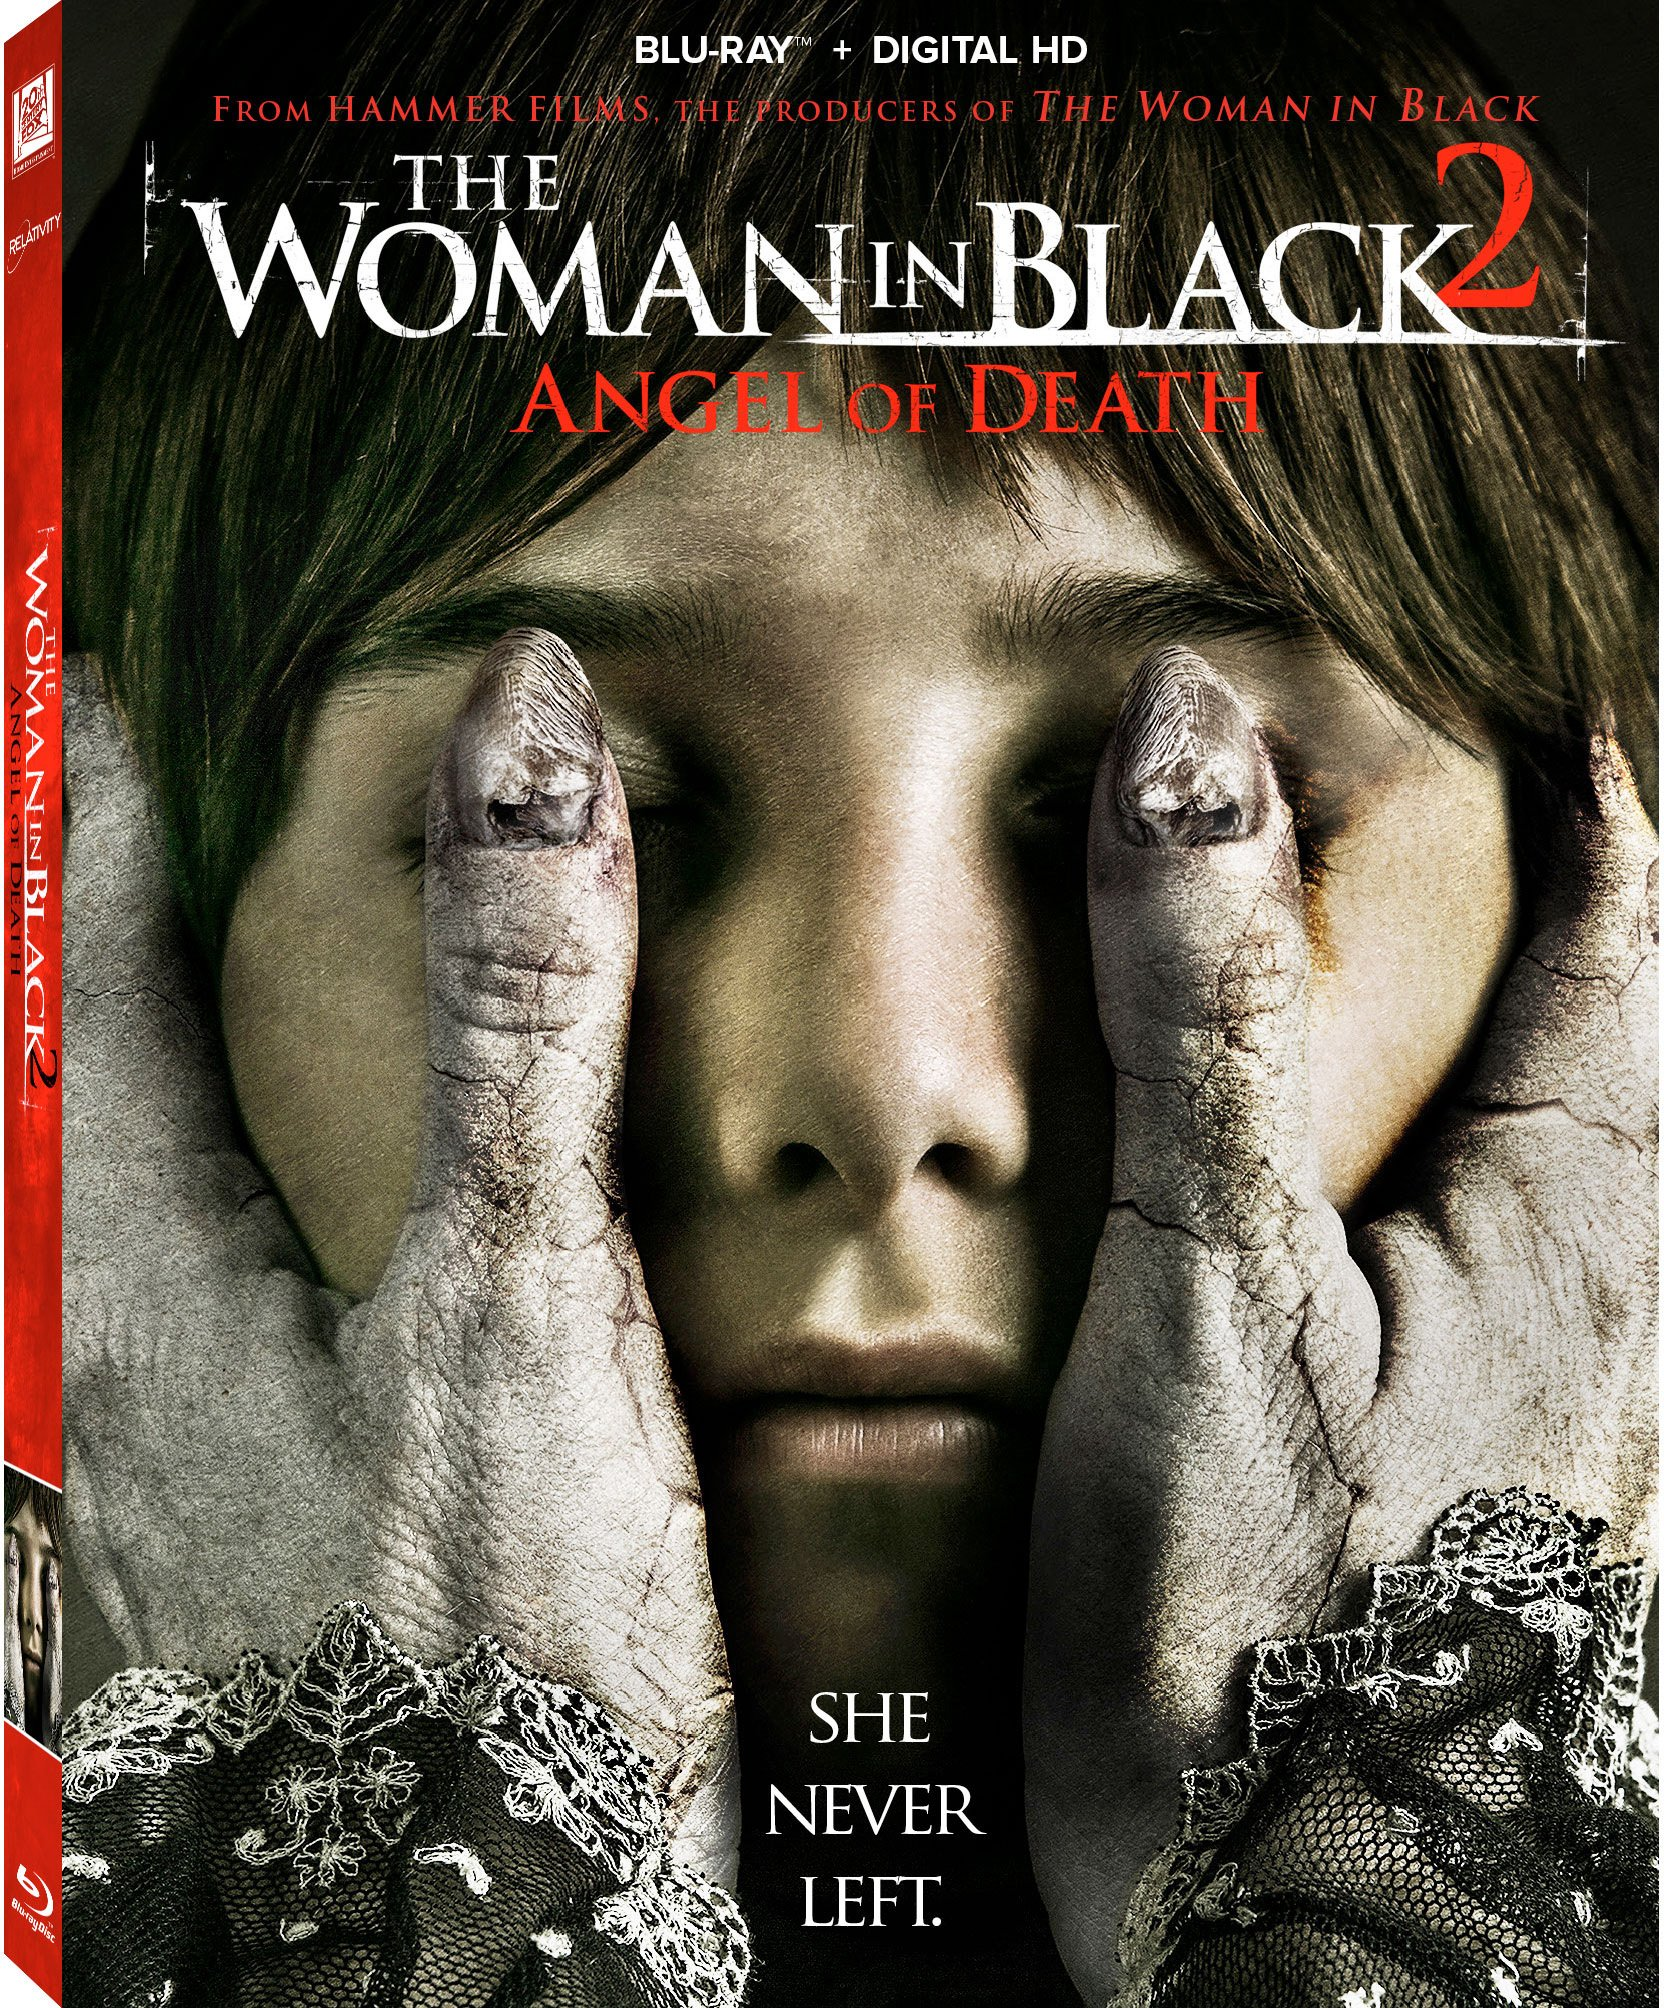 Blu-ray : The Woman in Black 2: Angel of Death (Digital Theater System, Widescreen, Digitally Mastered in HD, )